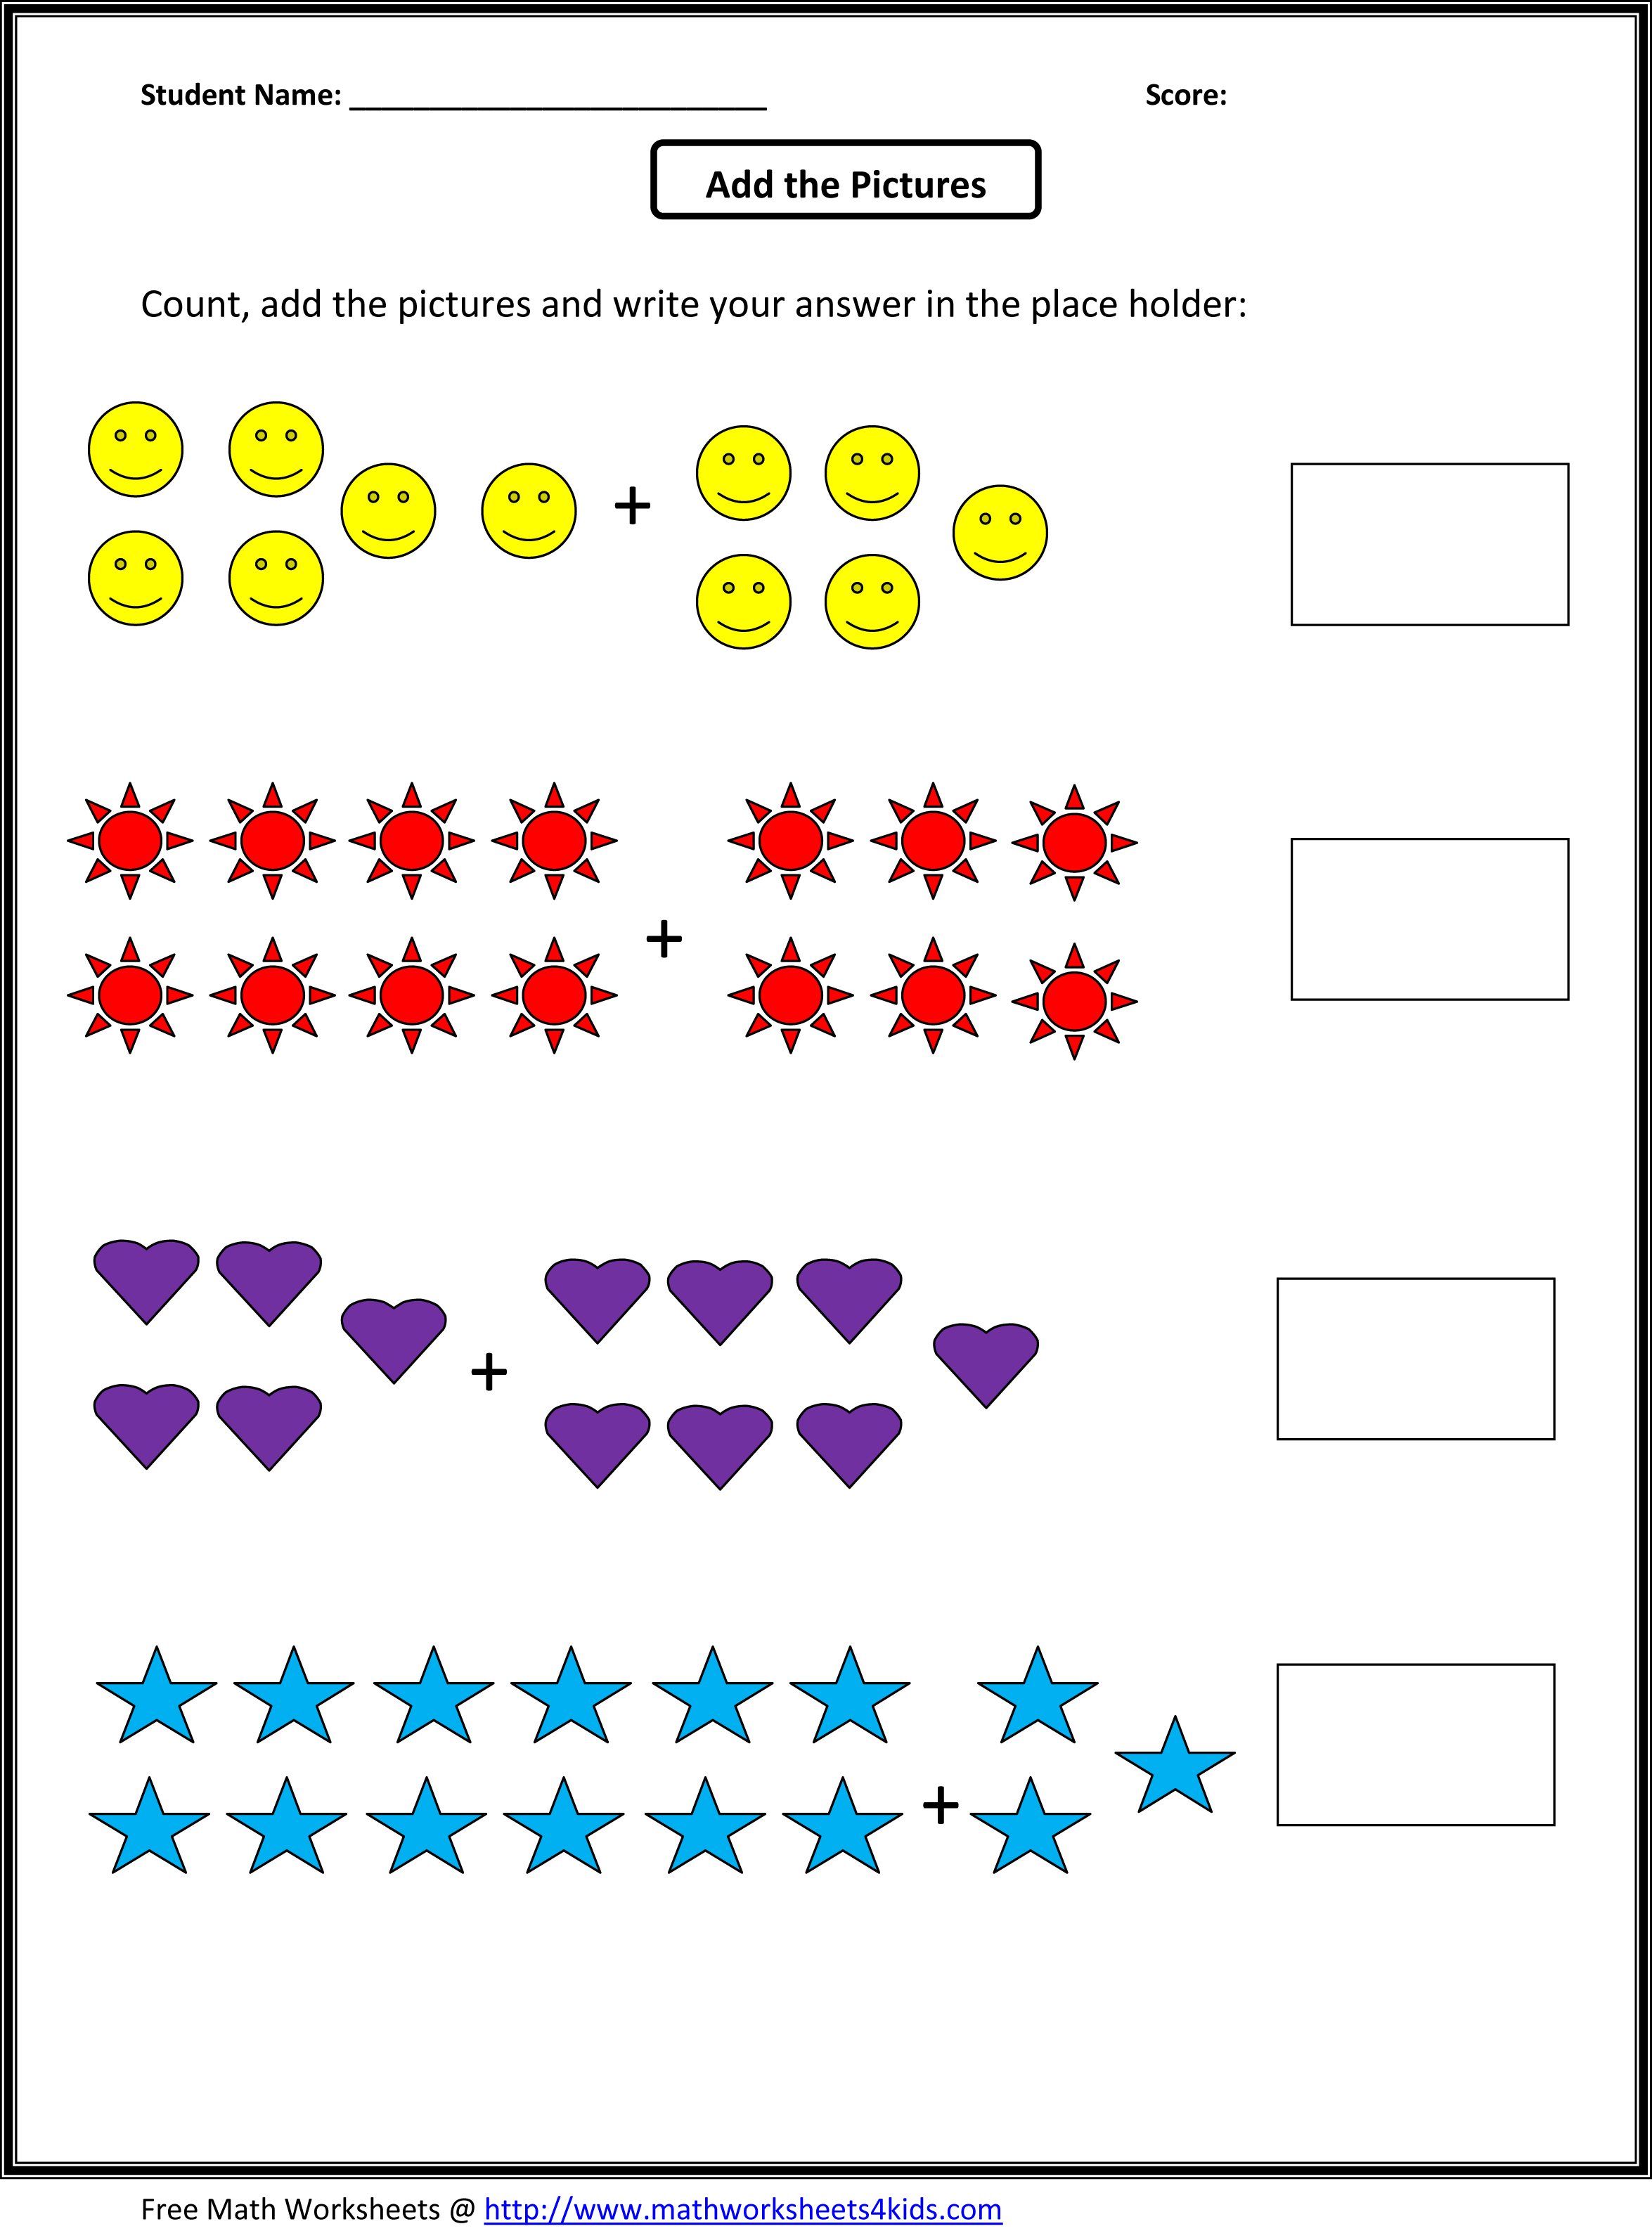 Proatmealus  Gorgeous Grade  Maths Worksheet  Reocurent With Outstanding Math Worksheets For St Grade Free  Reocurent With Cute Worksheets On Racism Also Combination Worksheet With Answers In Addition Patterns Worksheet And Radius And Diameter Worksheet As Well As Word Tracing Worksheets Additionally Virtual Frog Dissection Worksheet From Reocurentcom With Proatmealus  Outstanding Grade  Maths Worksheet  Reocurent With Cute Math Worksheets For St Grade Free  Reocurent And Gorgeous Worksheets On Racism Also Combination Worksheet With Answers In Addition Patterns Worksheet From Reocurentcom